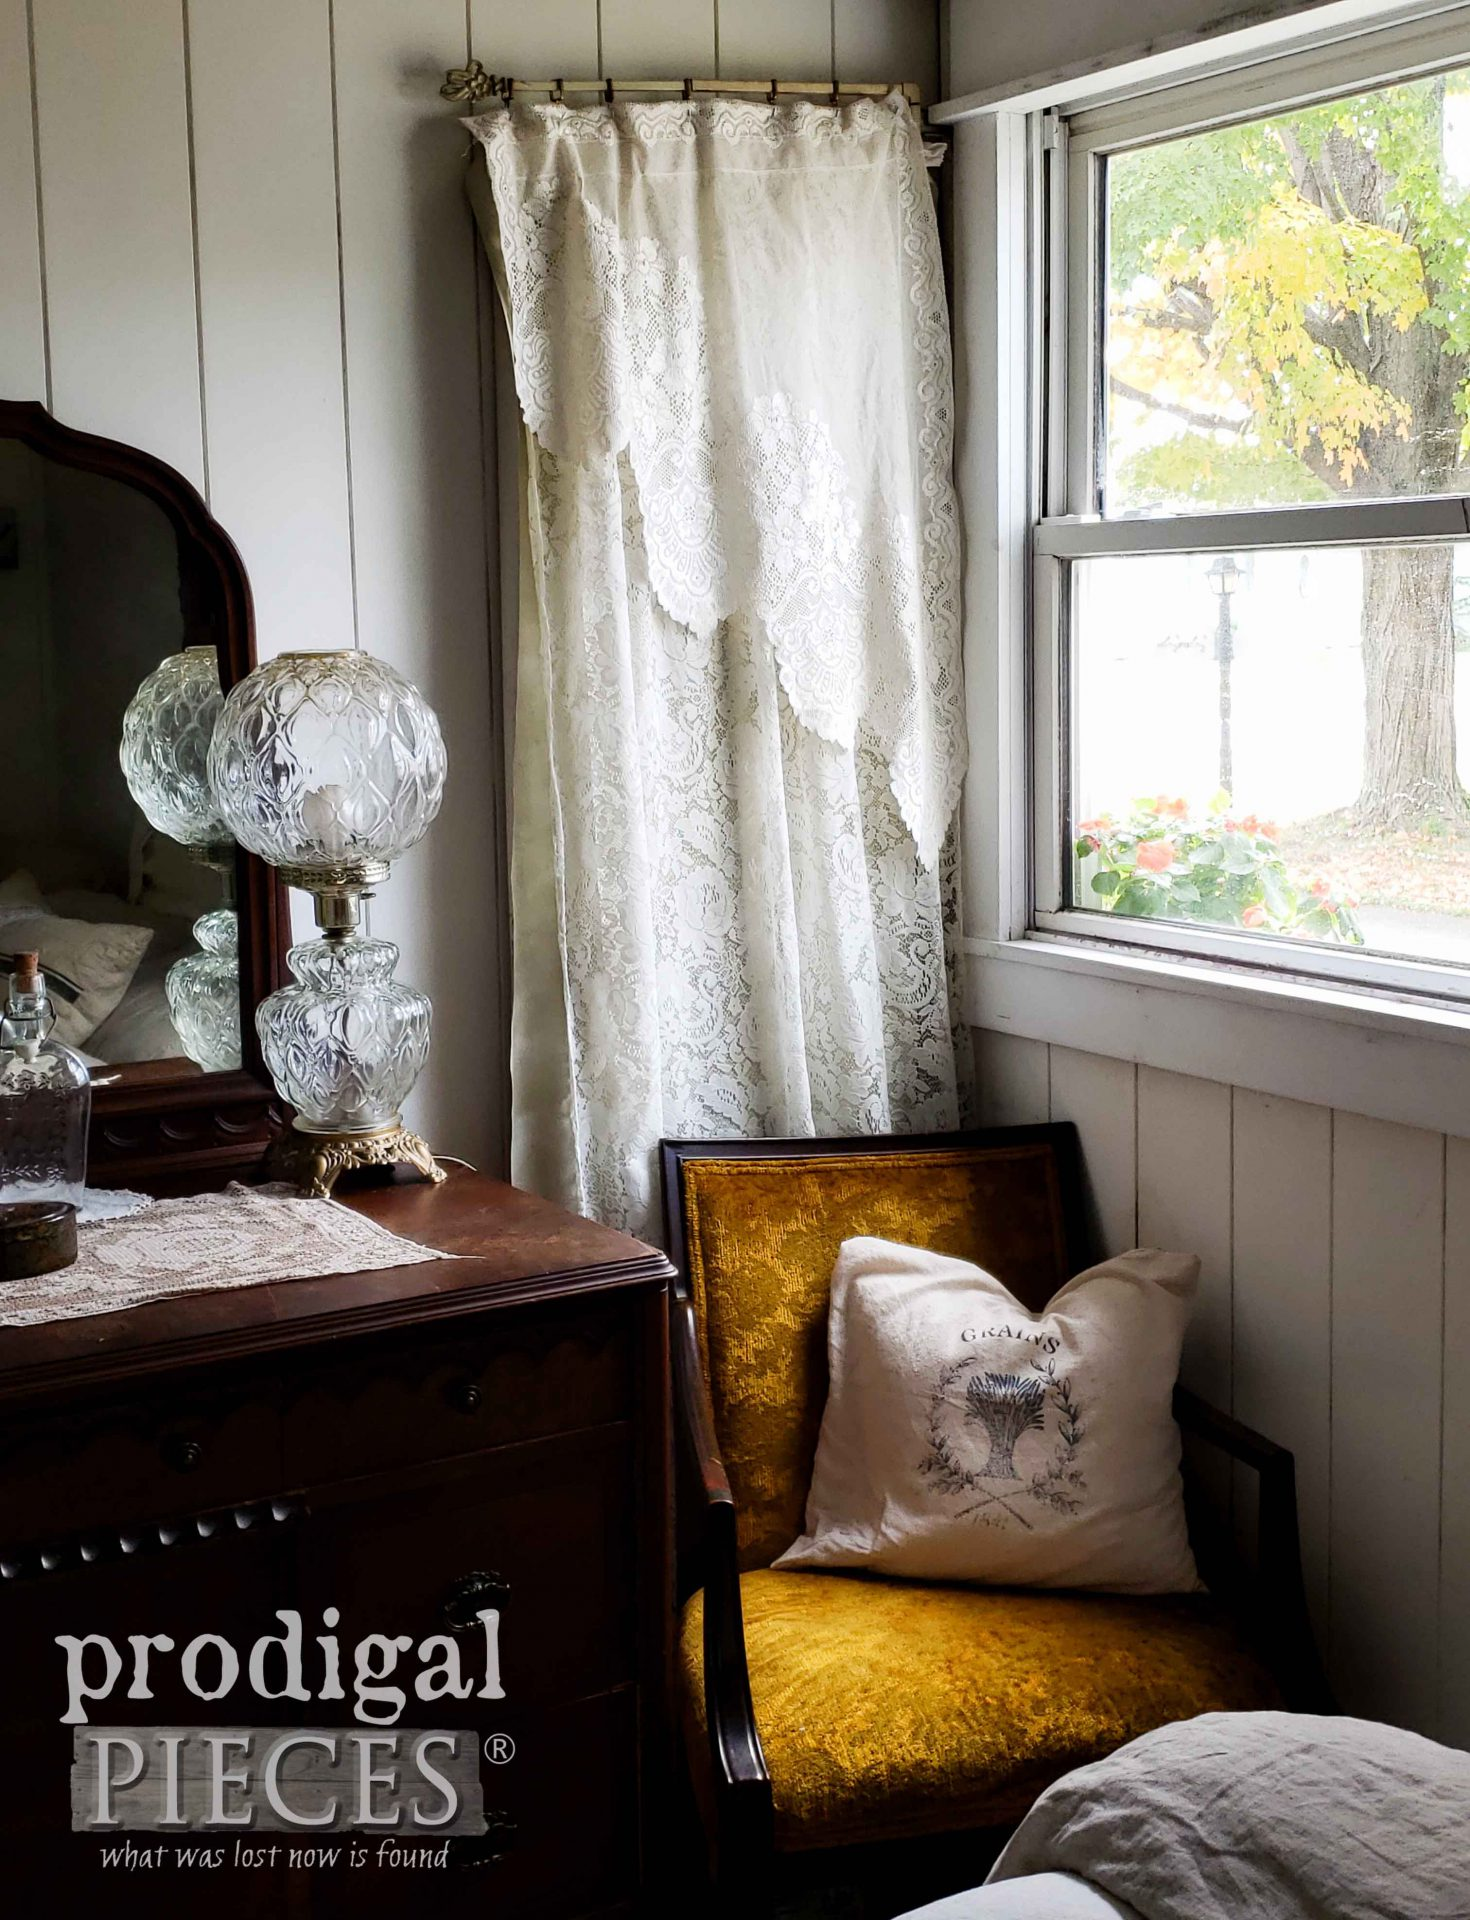 Farmhouse Bedroom Window with Antique Chartreuse Chair by Larissa of Prodigal Pieces | prodigalpieces.com #prodigalpieces #diy #home #homedecor #bedroom #farmhouse #fall